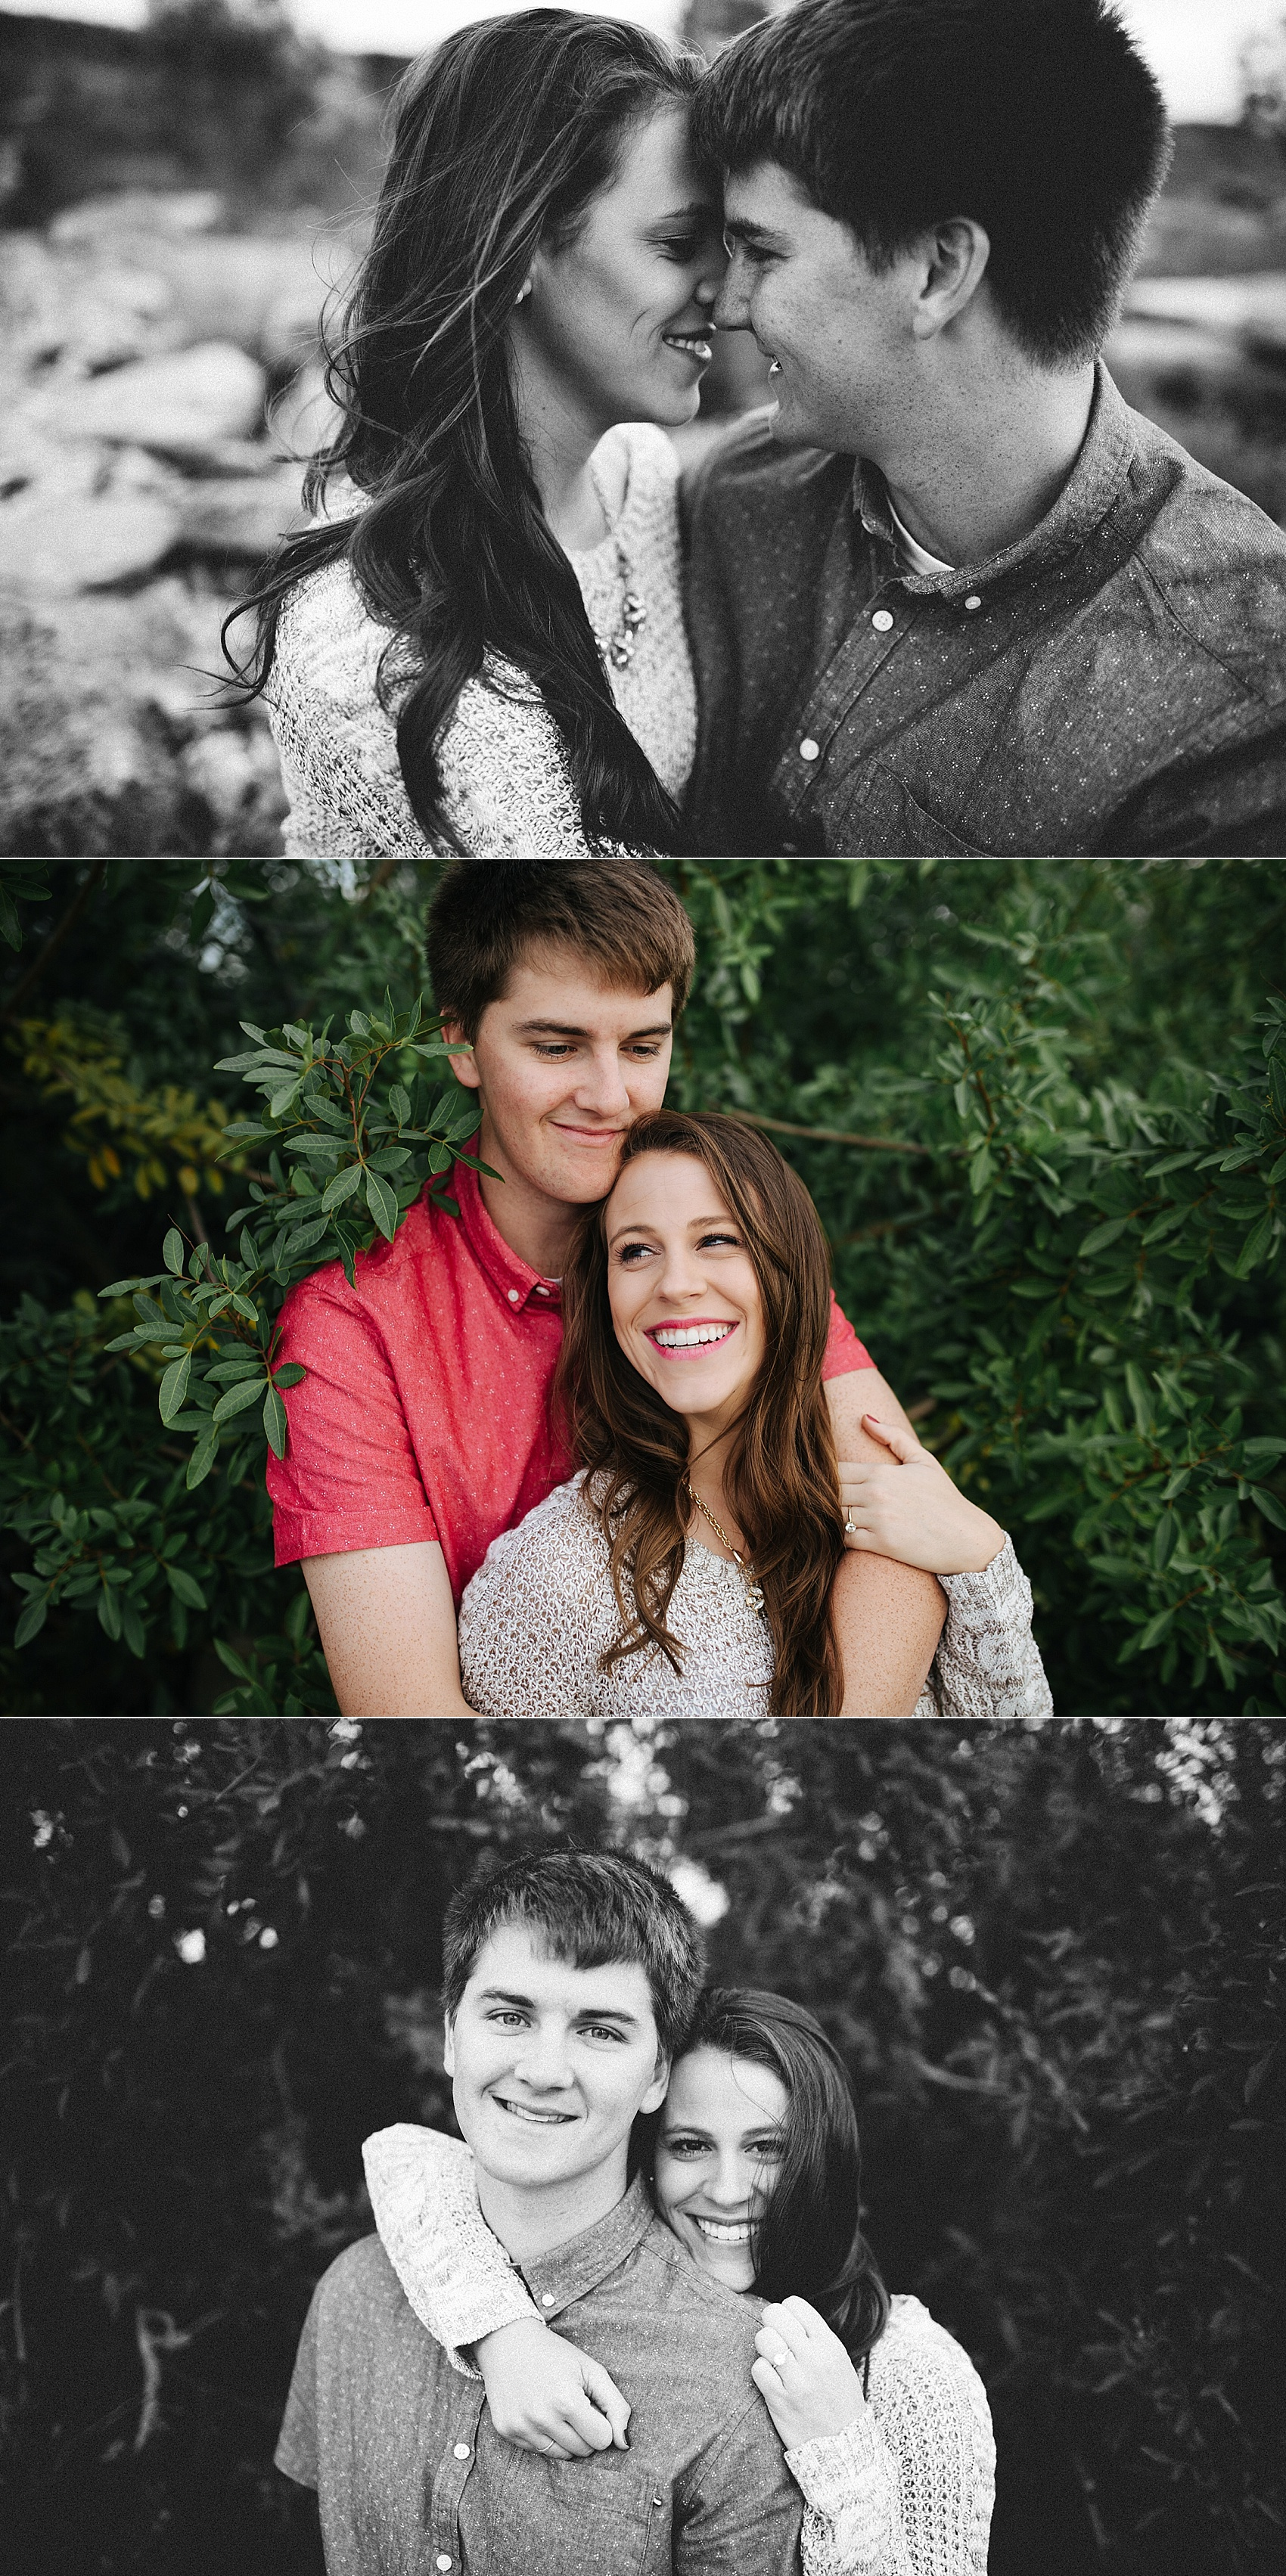 jake-and-katie-engagement-photos-11